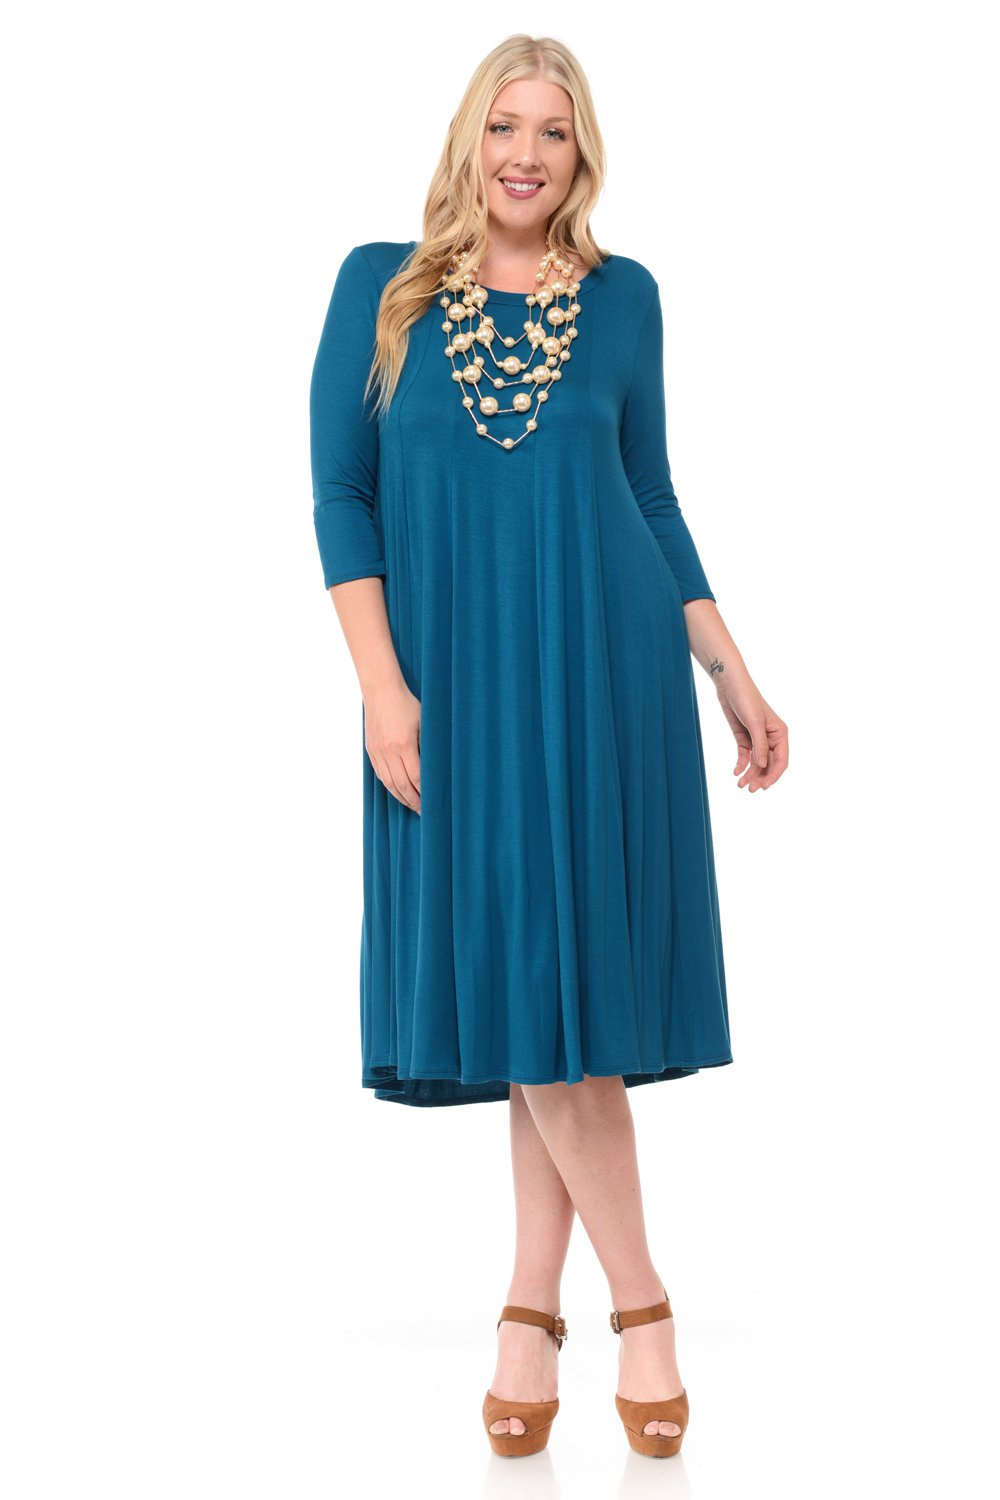 8a935788cf6 Galleon - Pastel By Vivienne Women s A-Line Trapeze Midi Dress Plus Size  XXX-Large Teal